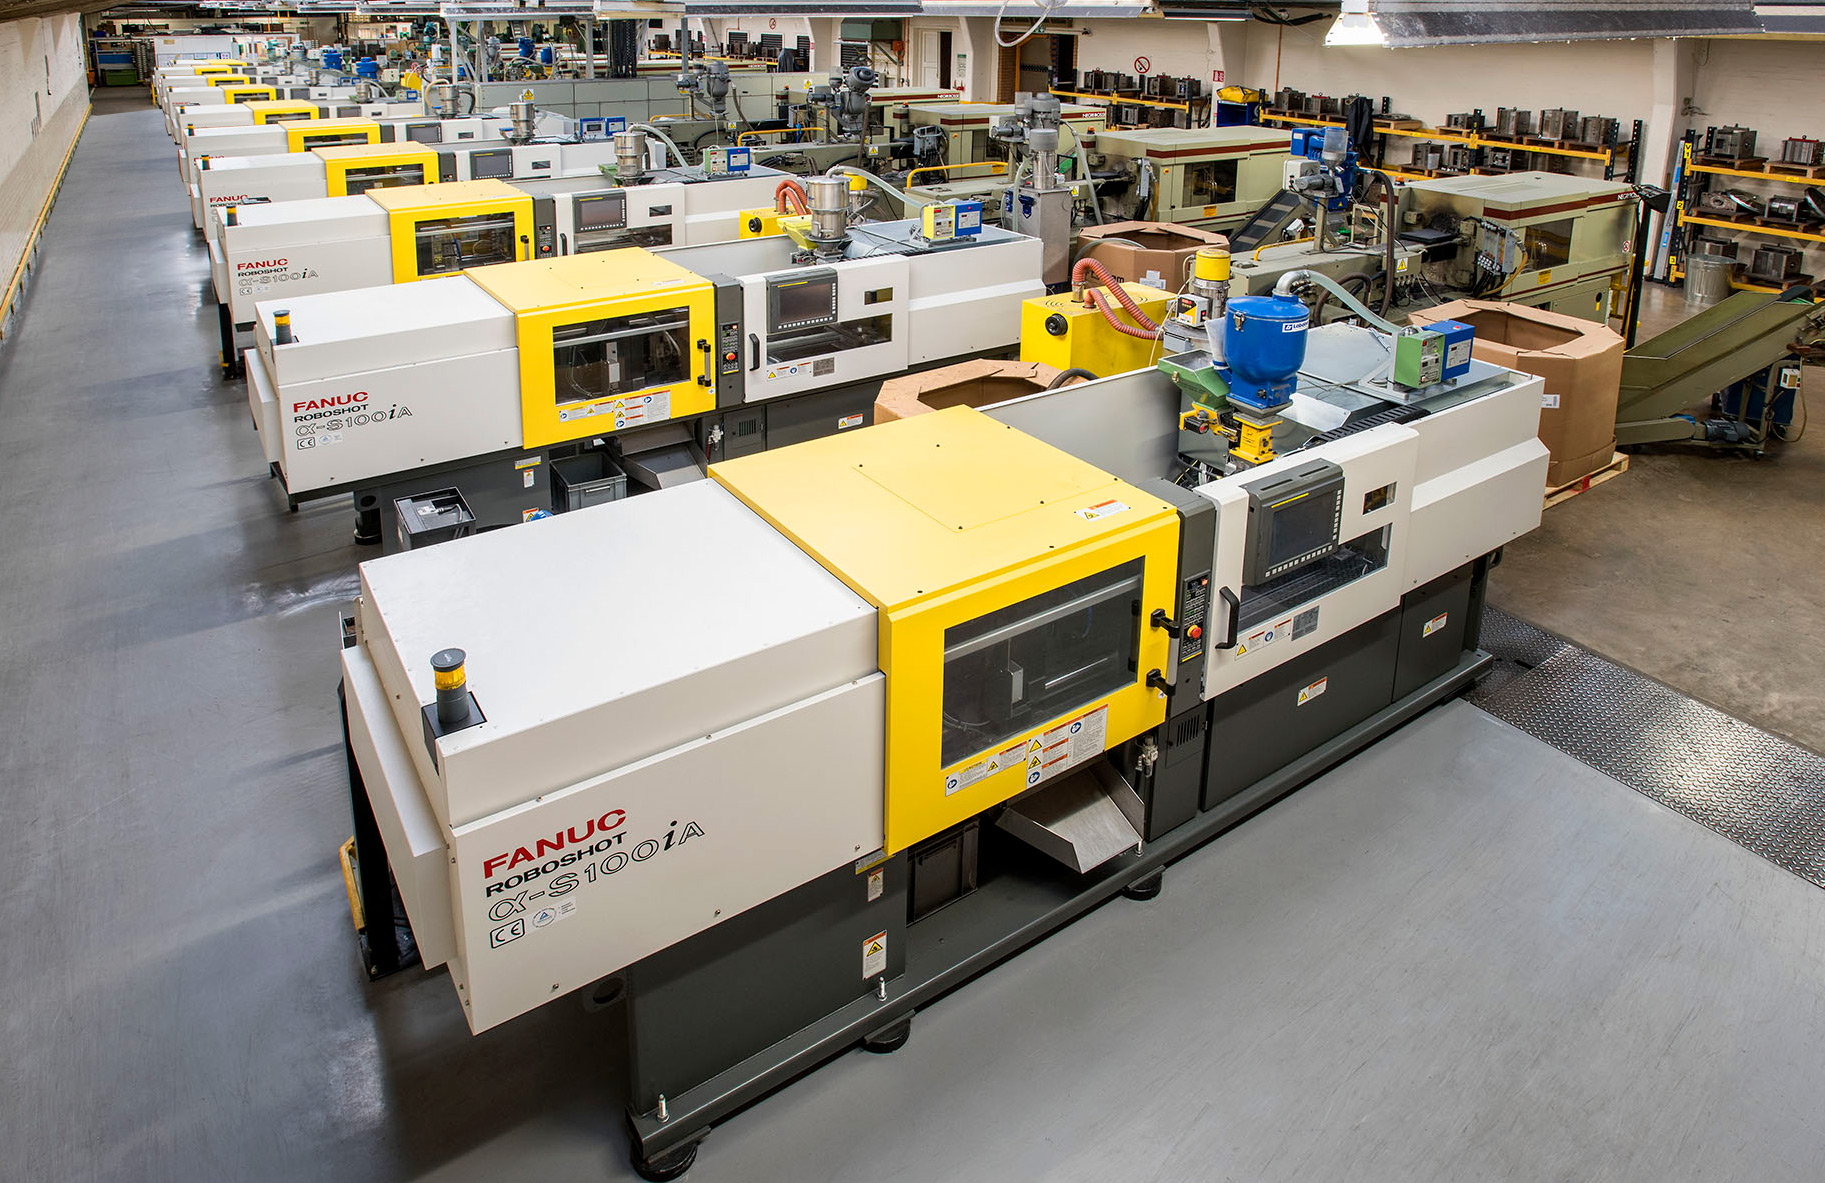 10 Fanuc Injection Moulding Machines